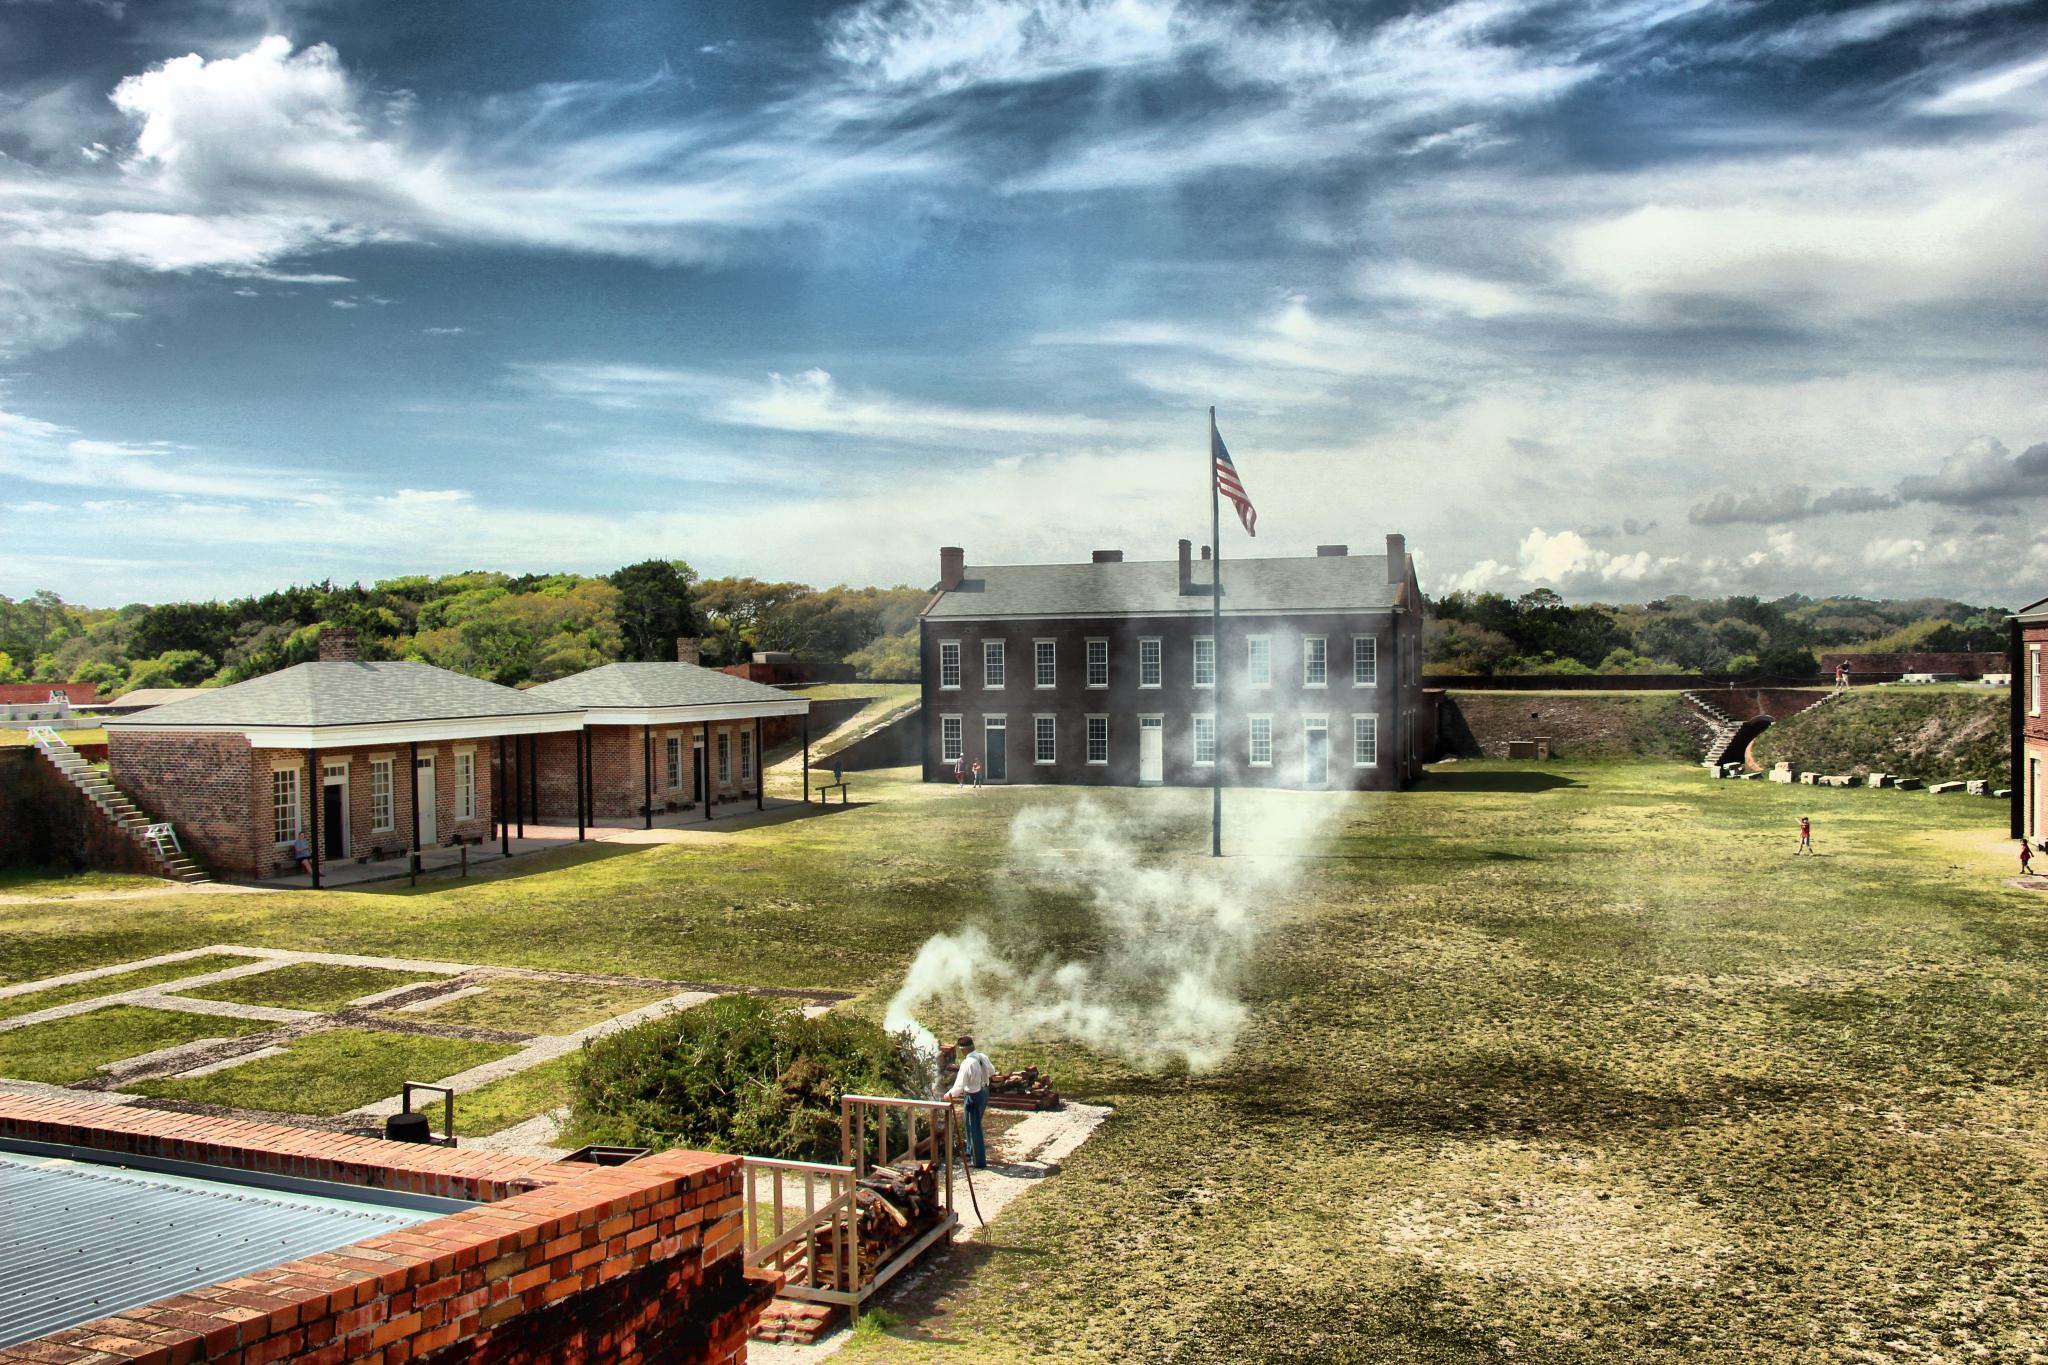 Fort Clinch was saved thanks to the Works Progress Administration and restored to resemble its appearance in the Civil War.